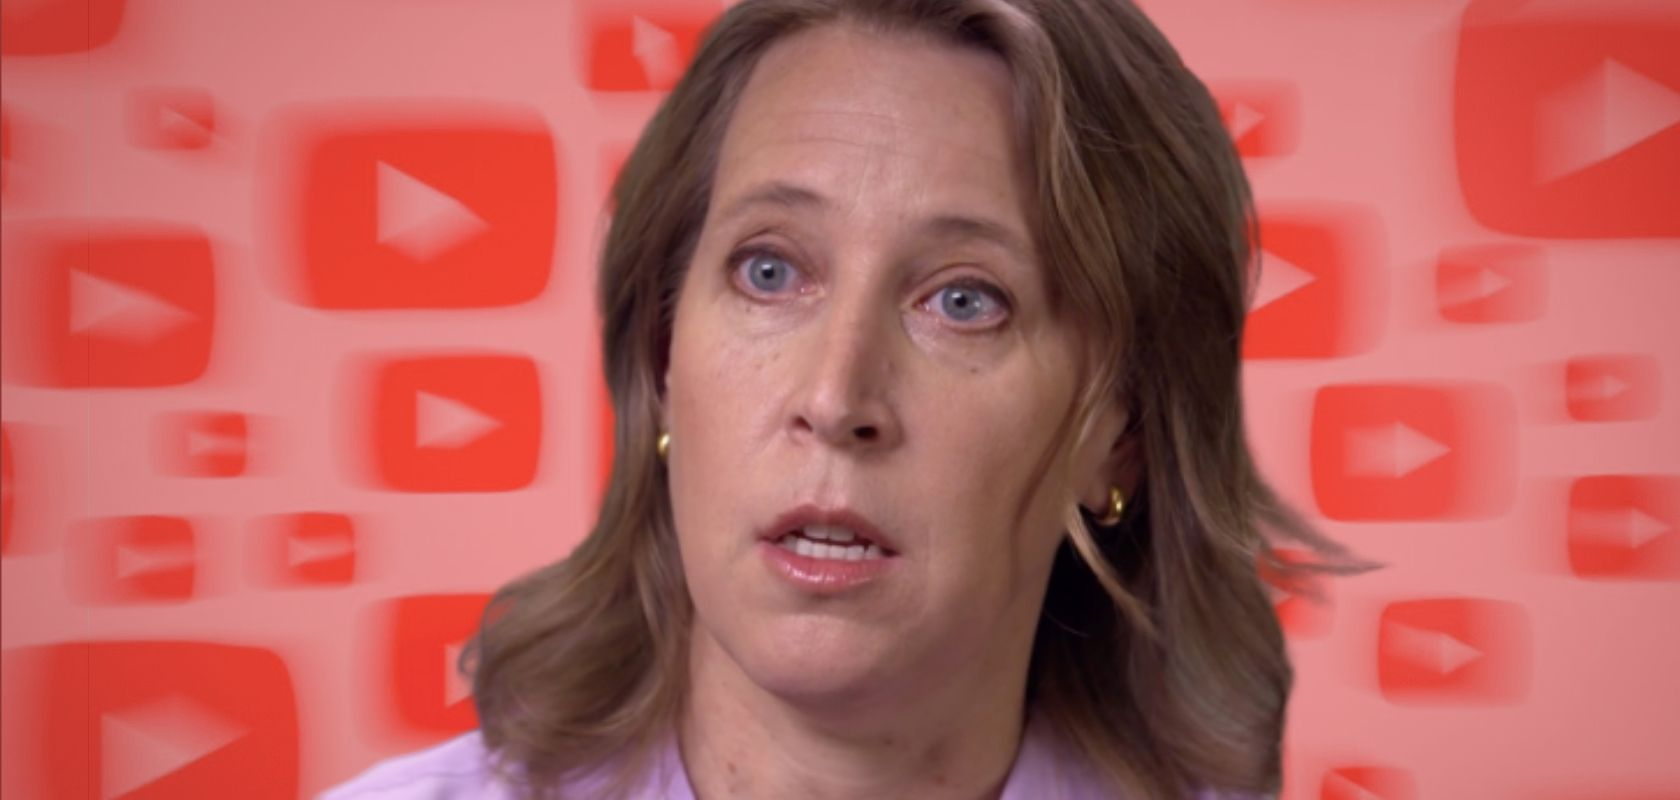 60 Minutes host Leslie Stahl pushes YouTube CEO Susan Wojcicki to restrict videos more during interview